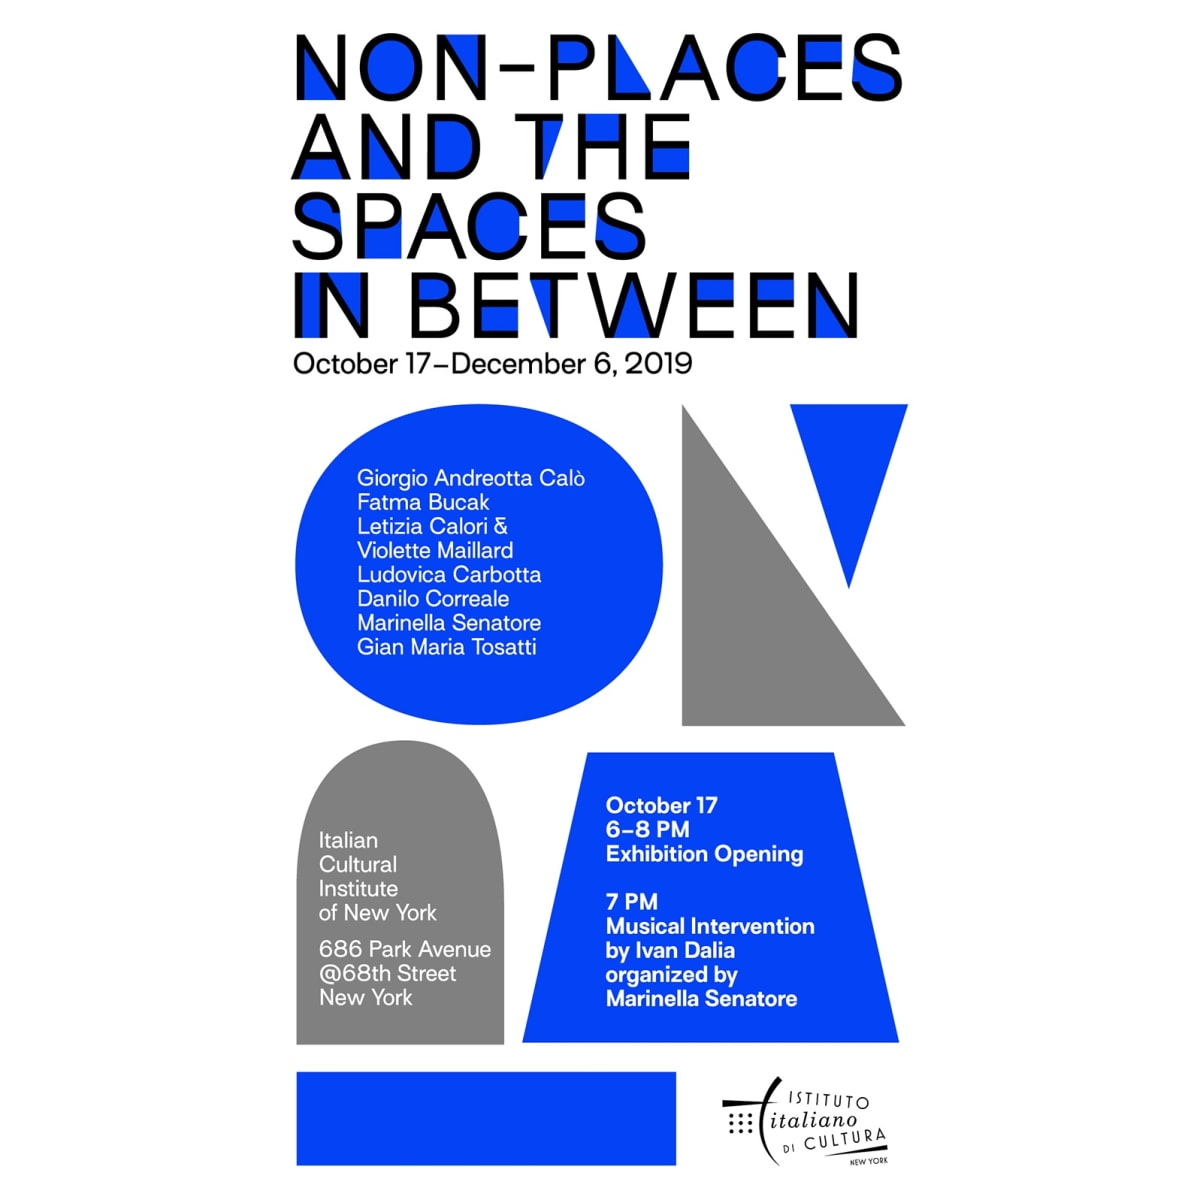 Fatma Bucak, Non-Places and the Spaces in Between curated by Ylinka Barotto with Chiara Mannarino